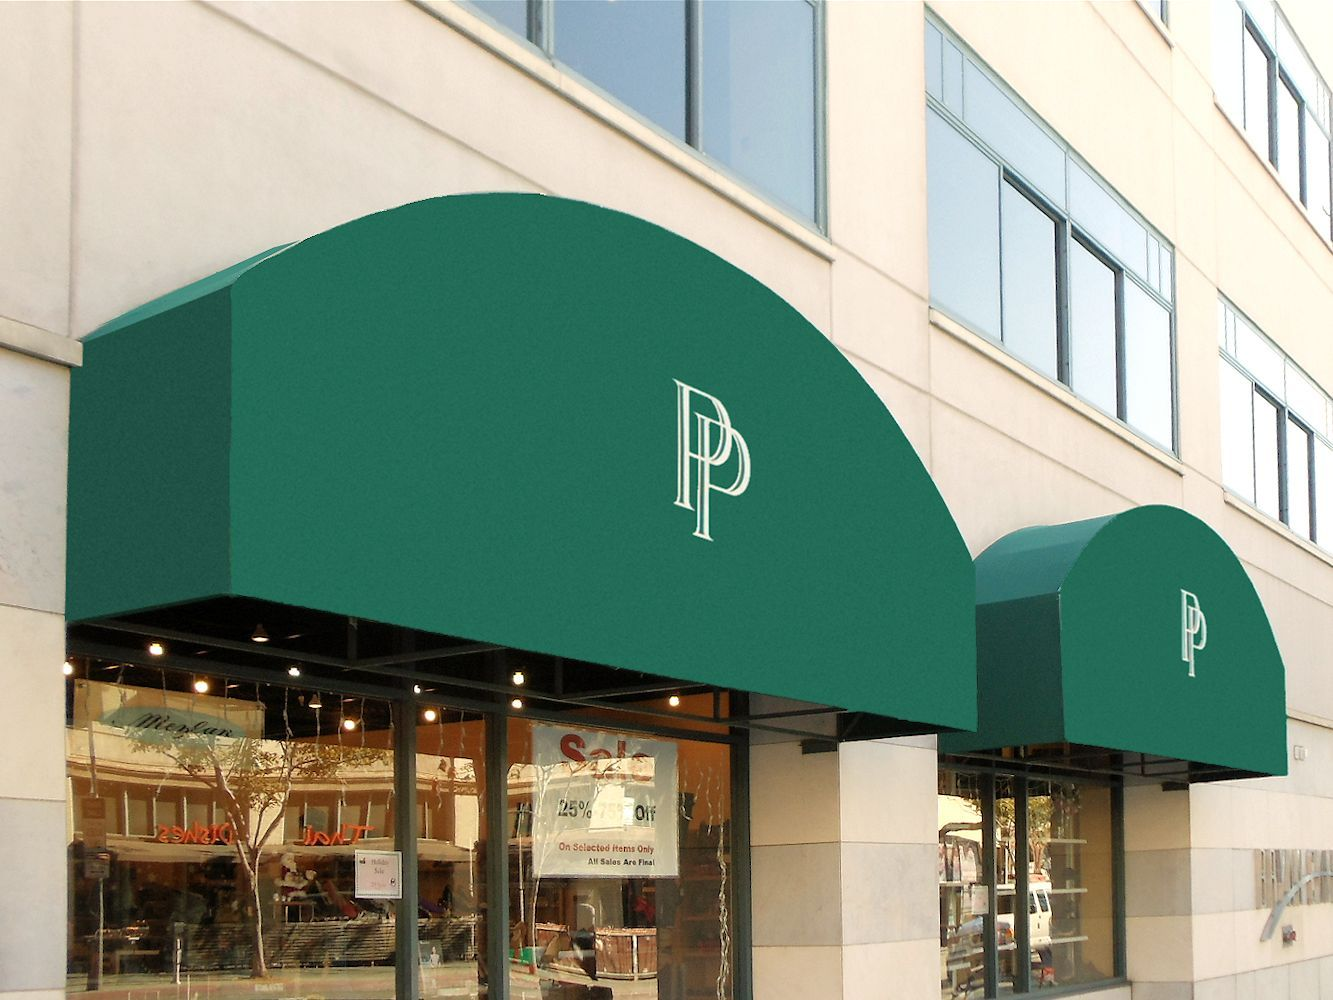 Commercial · Storefront Entrance Canopies by Superior Awning ... & Storefront Entrance Canopies by Superior Awning in Southern ...